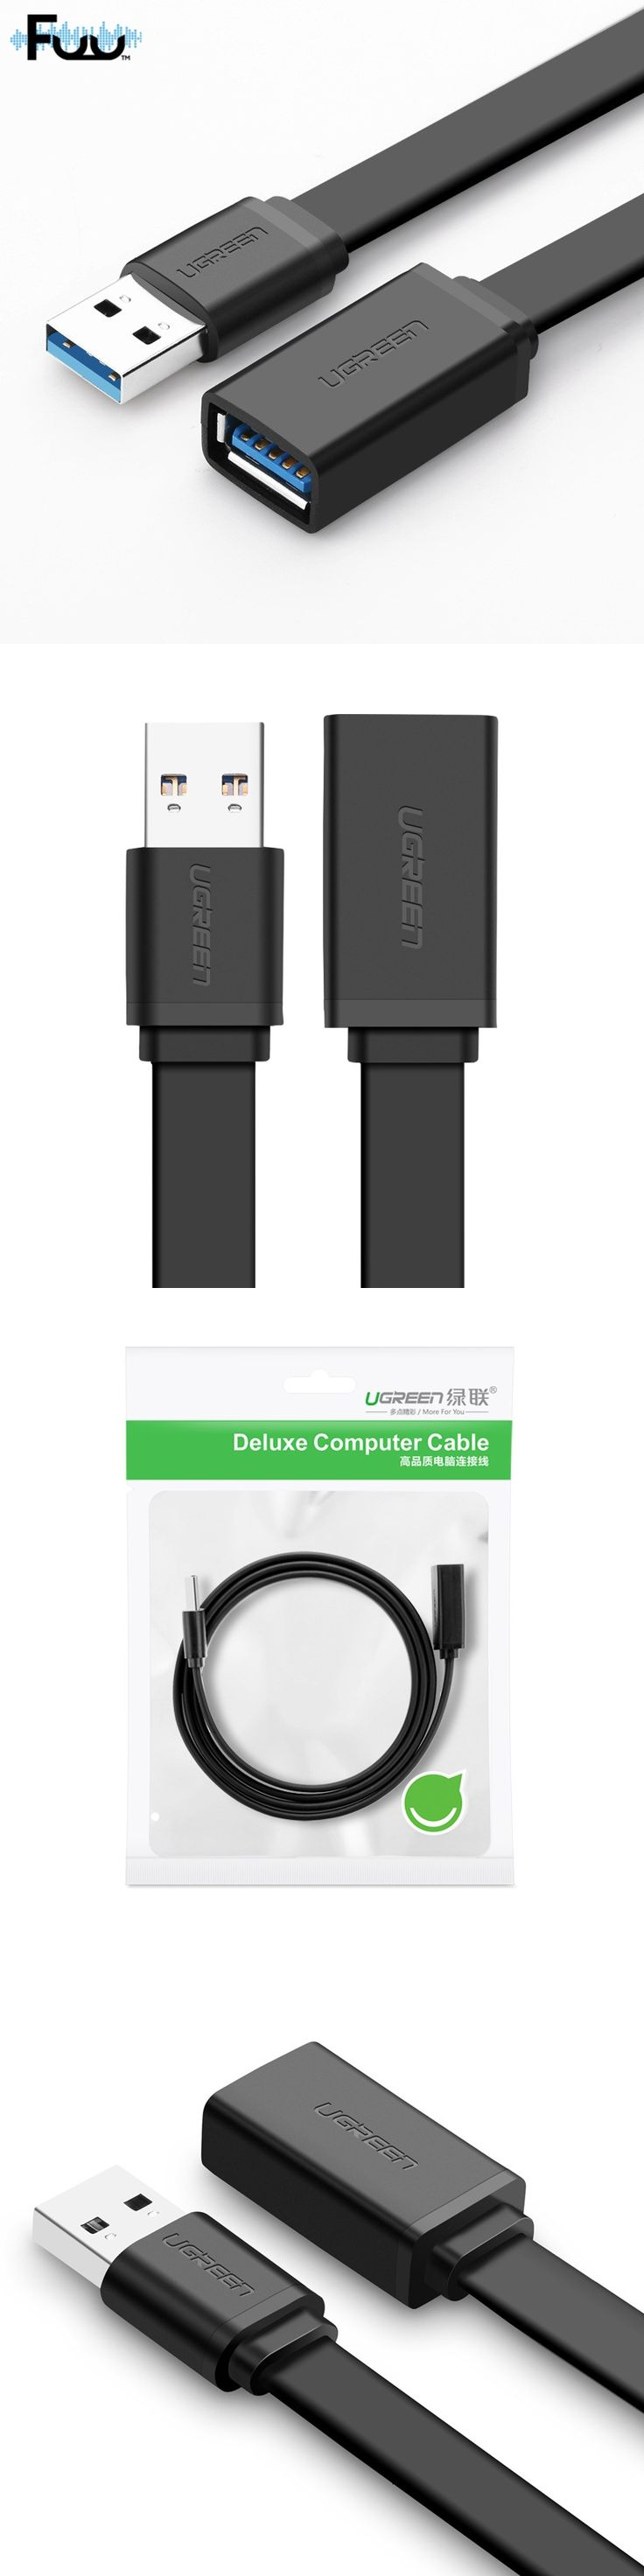 Newest 3.0 Usb Extension Data Transfer Sync Super Speed Cable Adapter Connector USB3.0 A Male To Female Extension Cable HZSP071